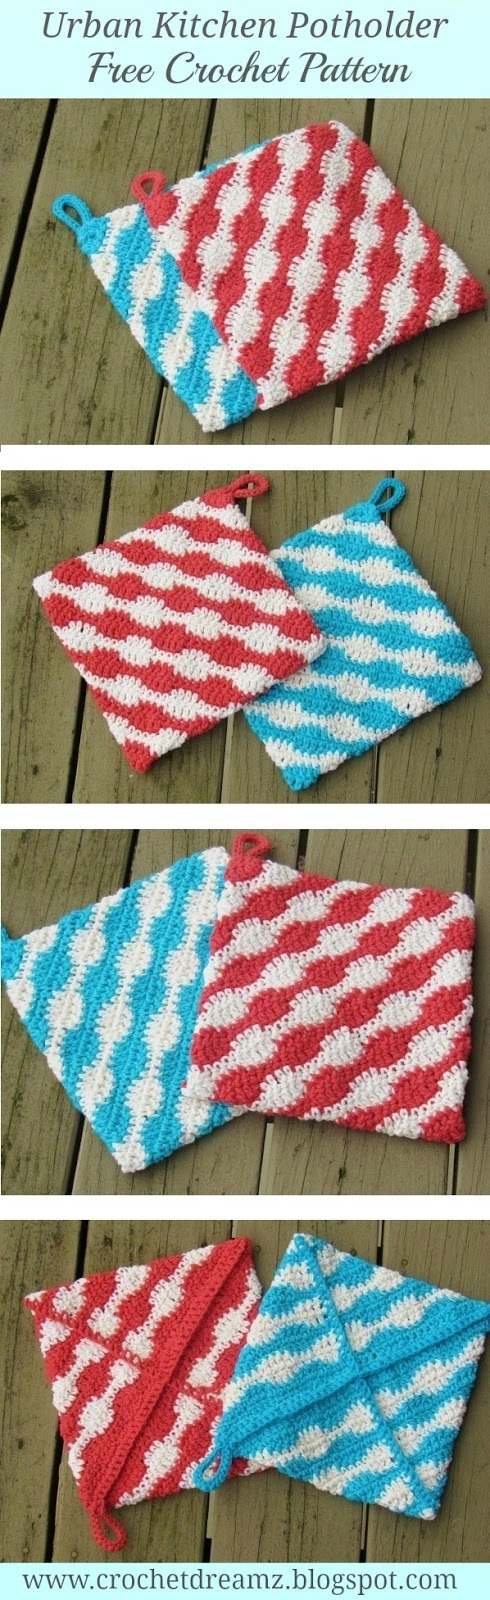 Crochet Potholder free pattern,